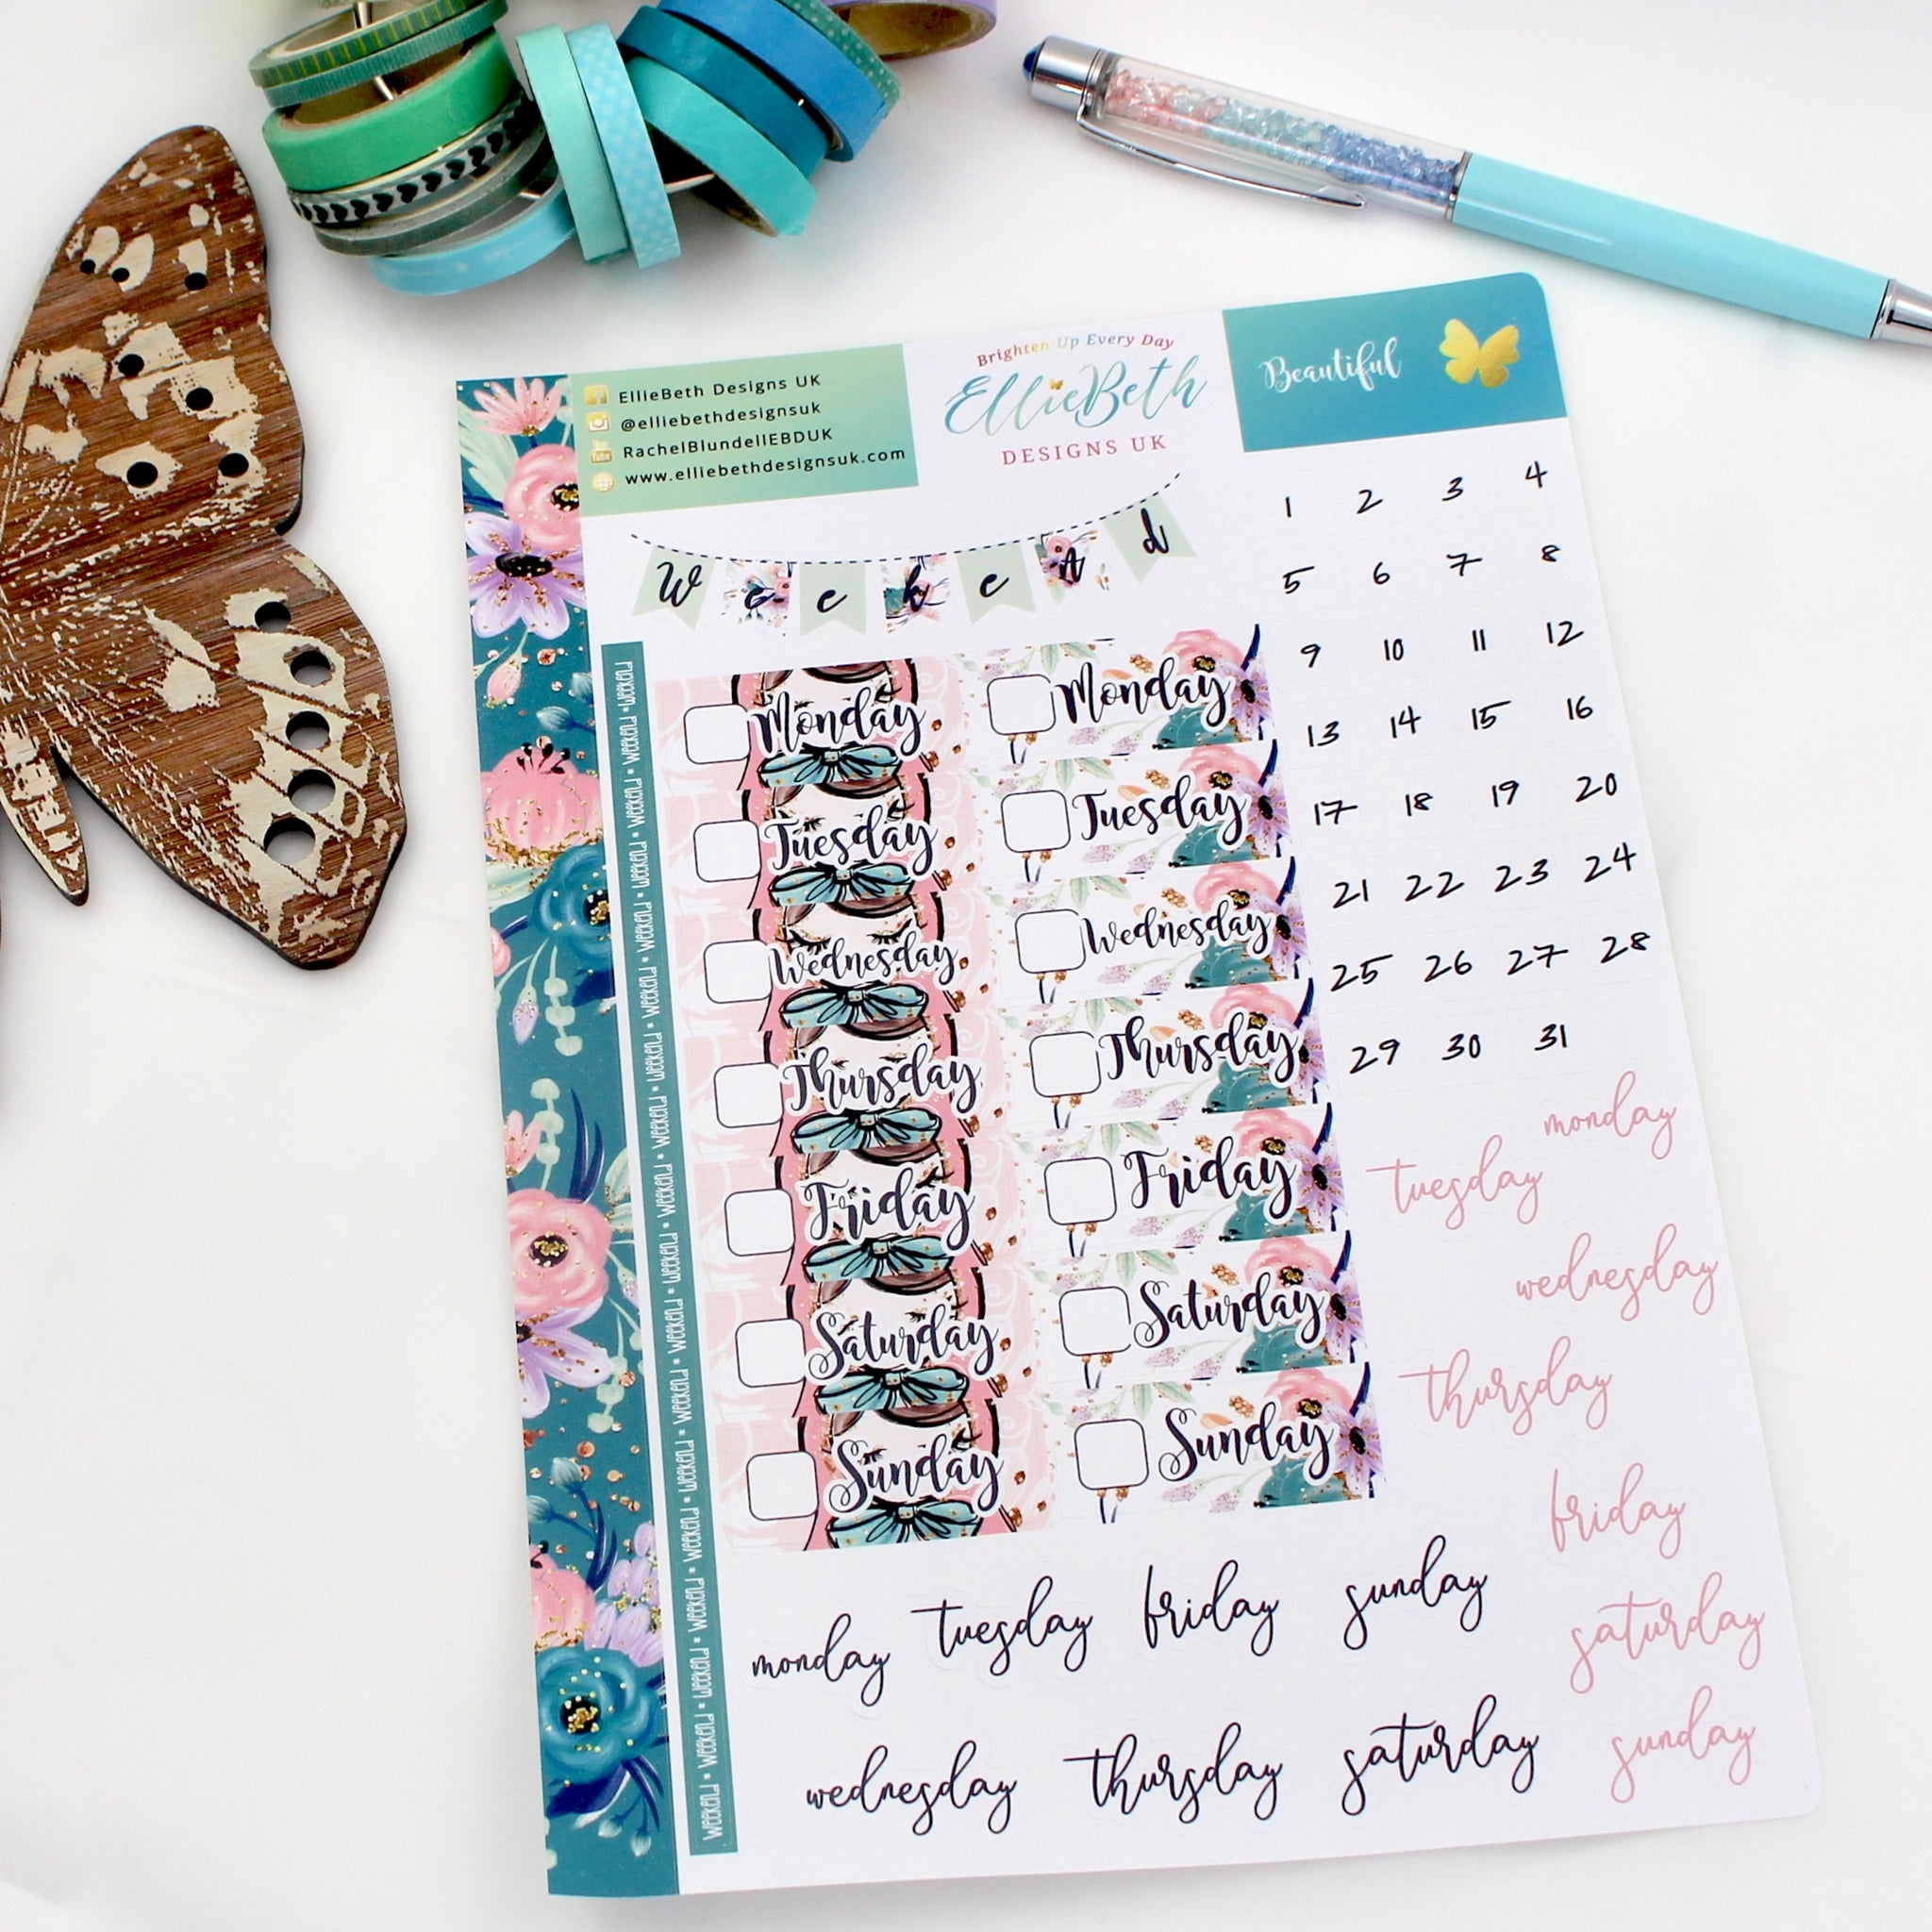 'Beautiful' - Days and Dates -  A5 binder ready planner stickers - EllieBeth Designs UK